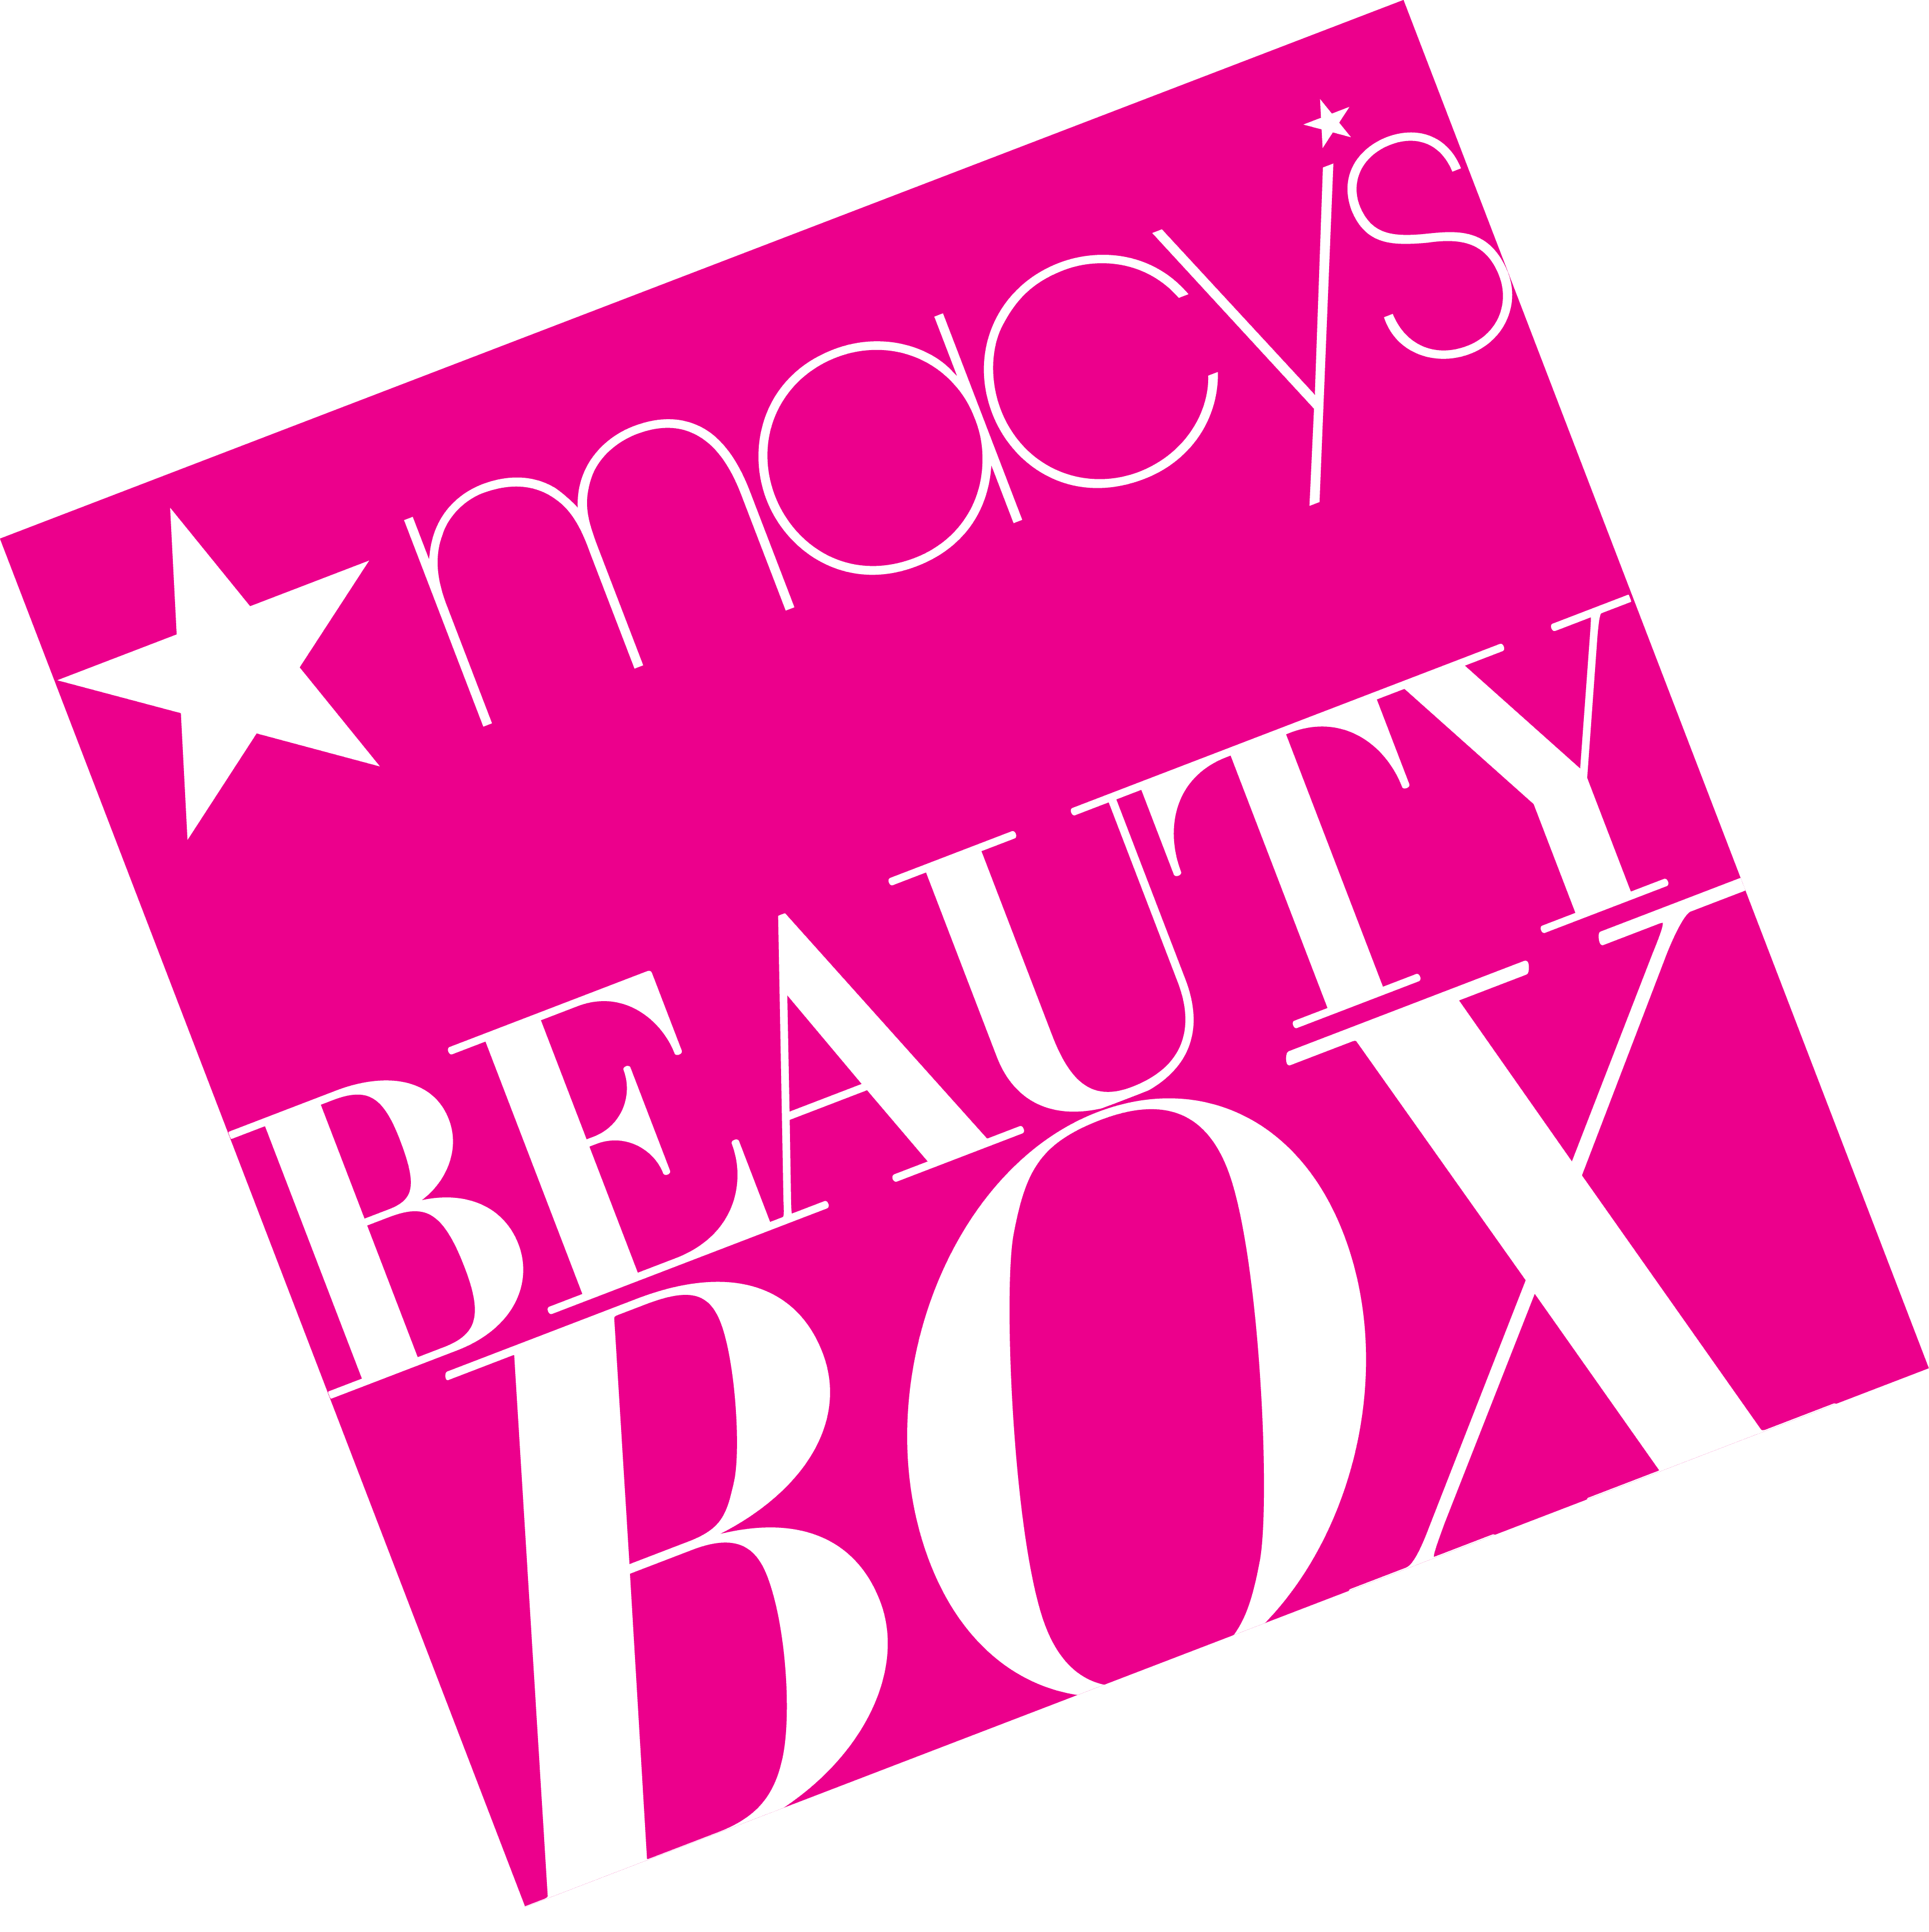 Macy's Beauty Box April 2018 Full Spoilers!